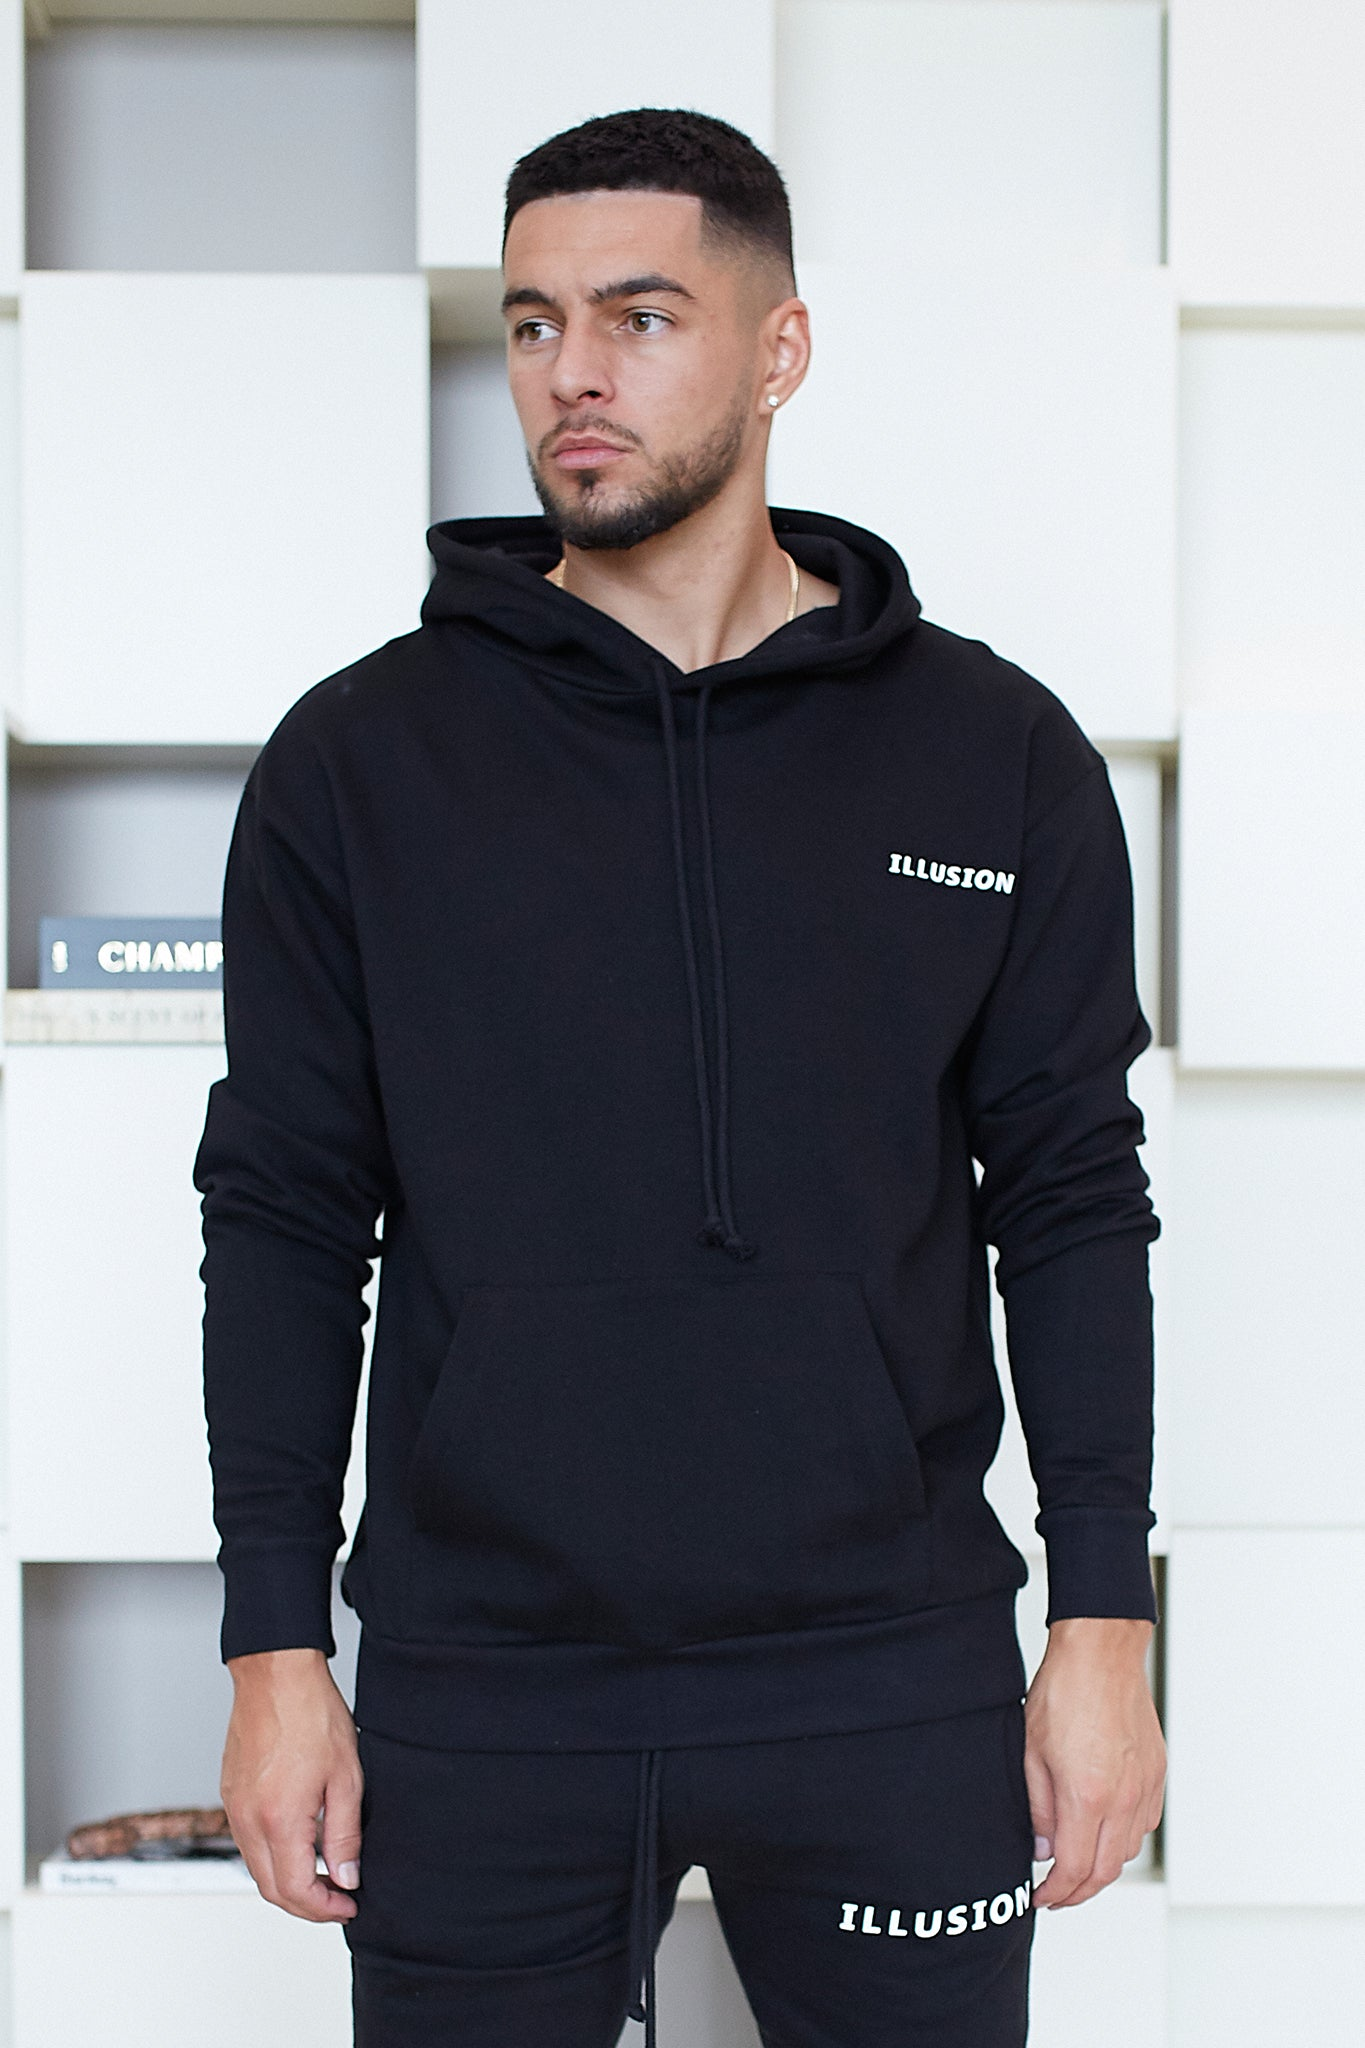 BLACK ESSENTIALS HOODIE - Illusion Attire